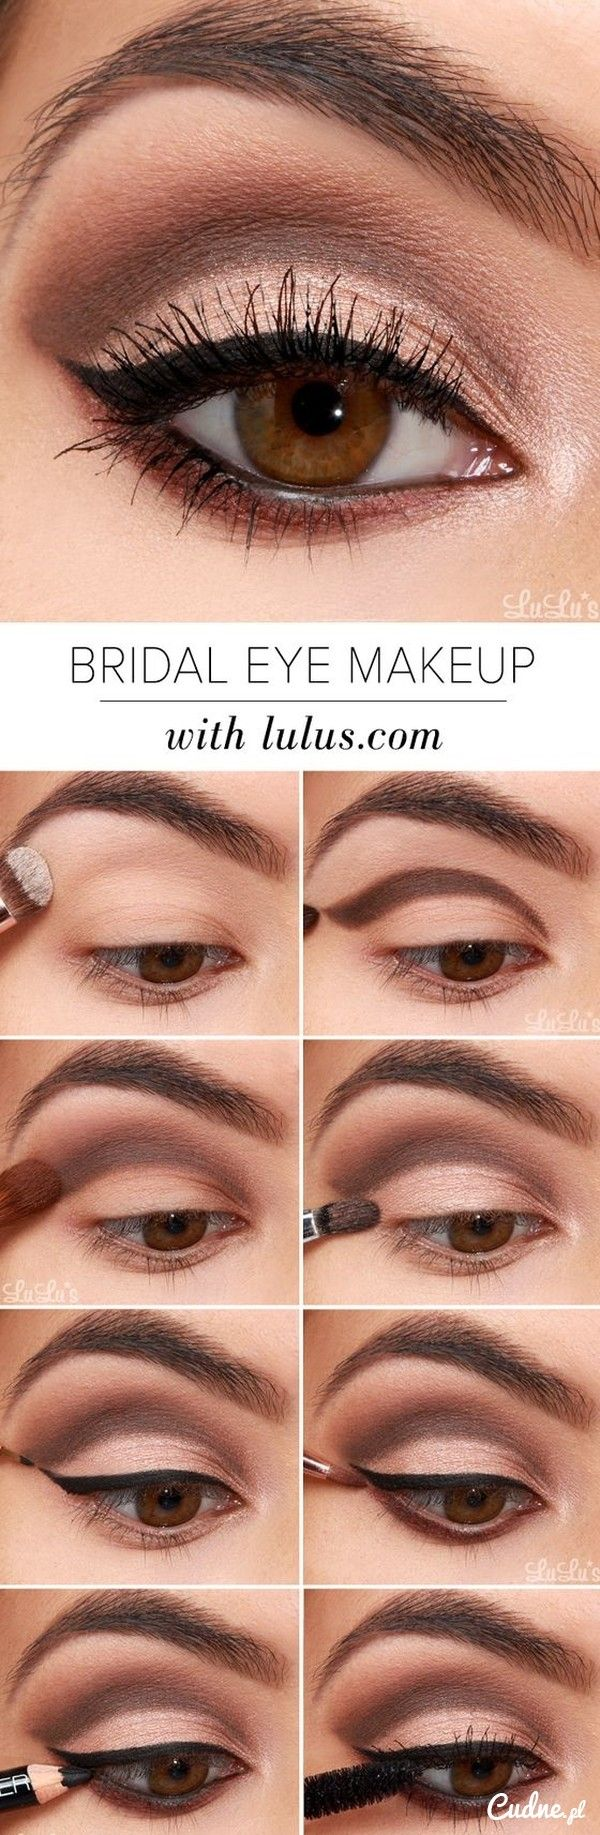 Best images about Maquillaje on Pinterest  Smoky eye Eyeshadow